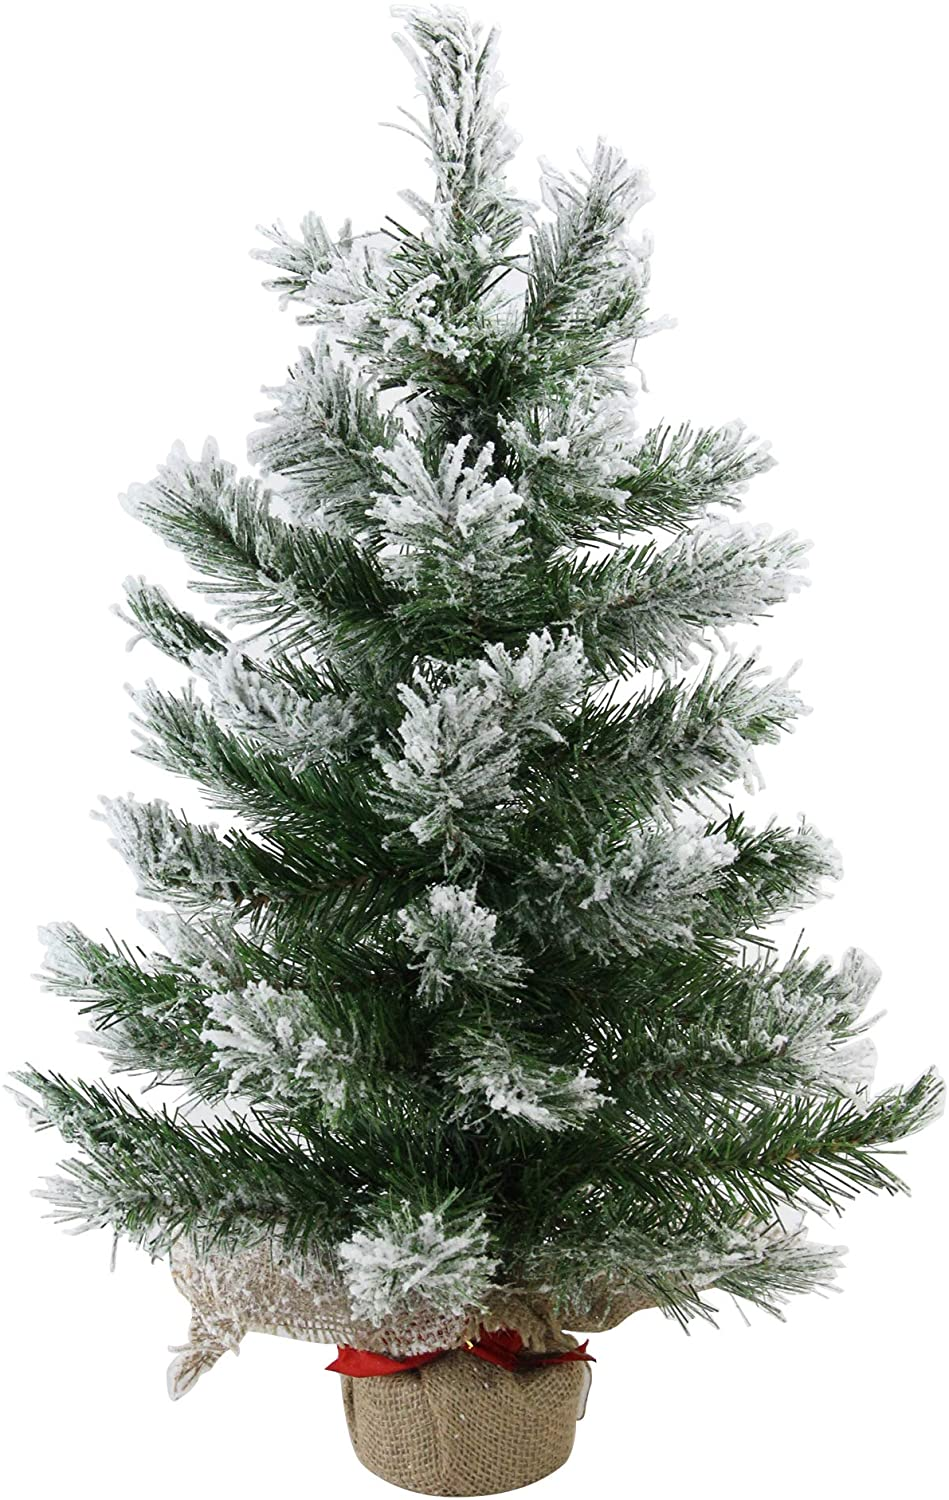 Northlight Pine Artificial Christmas Tree in Burlap Base, 24 inches